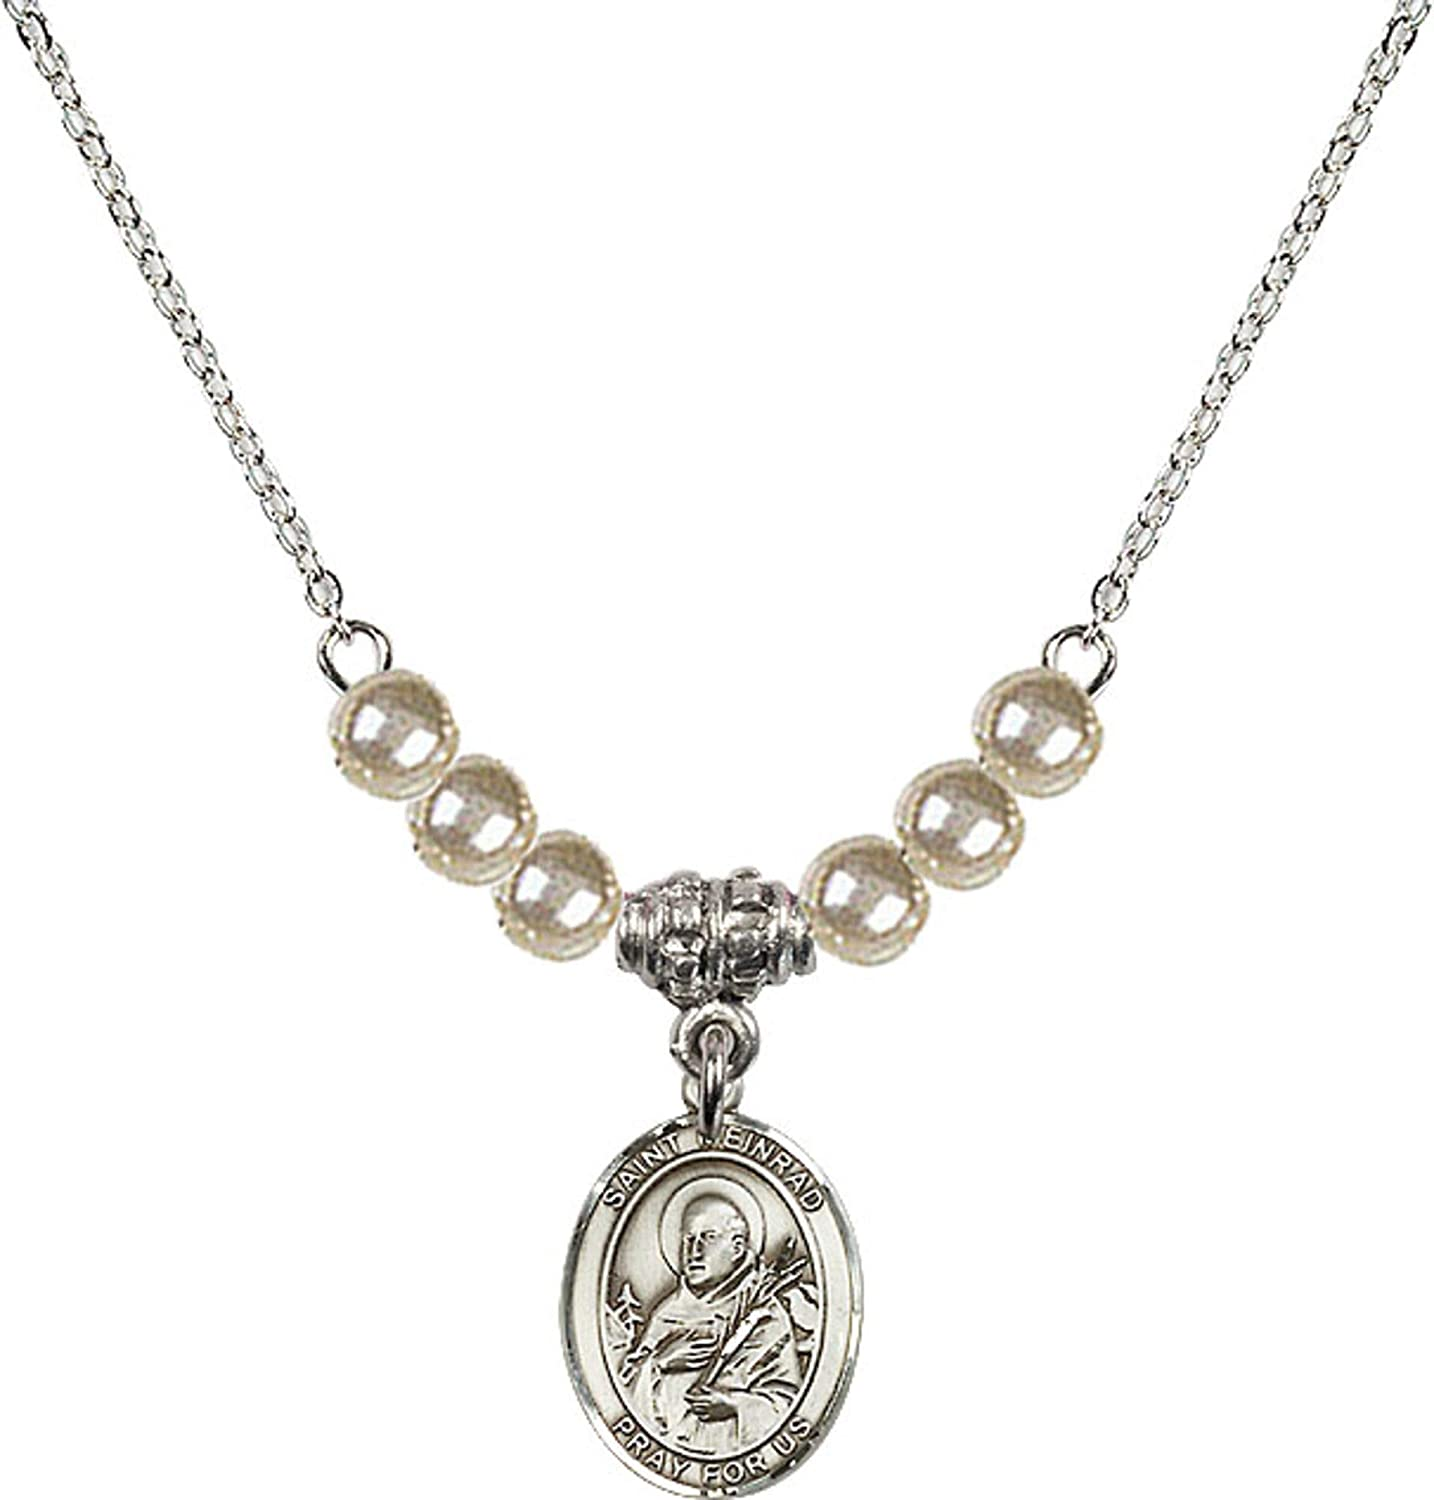 Bonyak Jewelry 18 Inch Rhodium Plated Necklace w// 4mm Faux-Pearl Beads and Saint Meinrad of Einsiedeln Charm